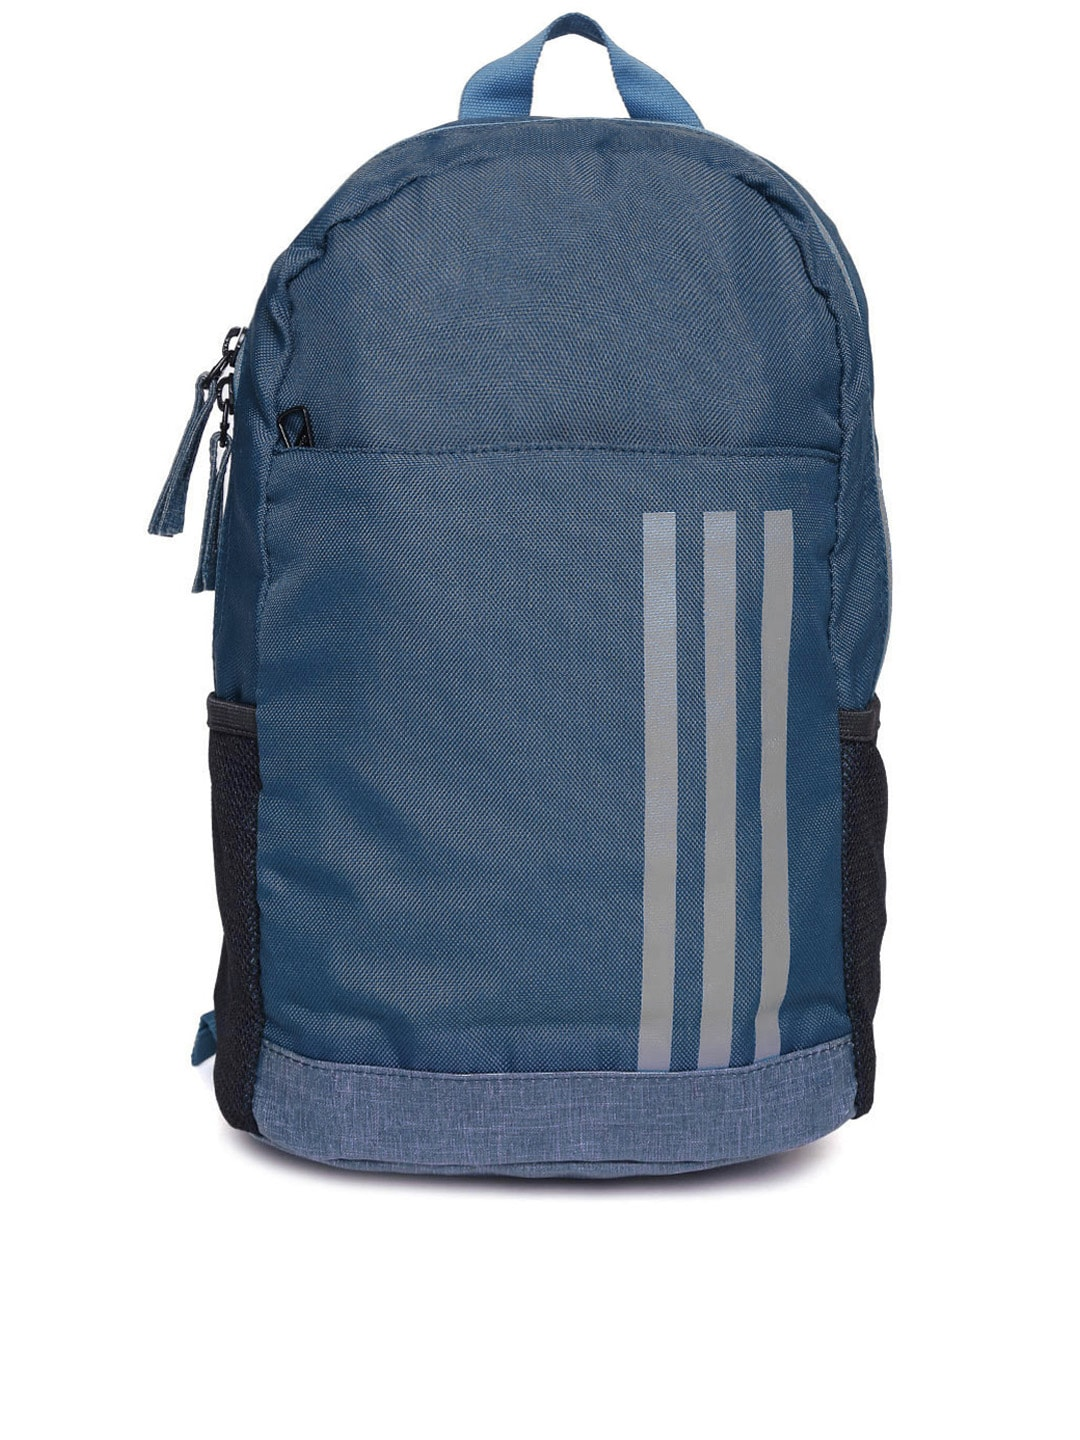 34f78535ab51 Buy adidas school bags price   OFF65% Discounted